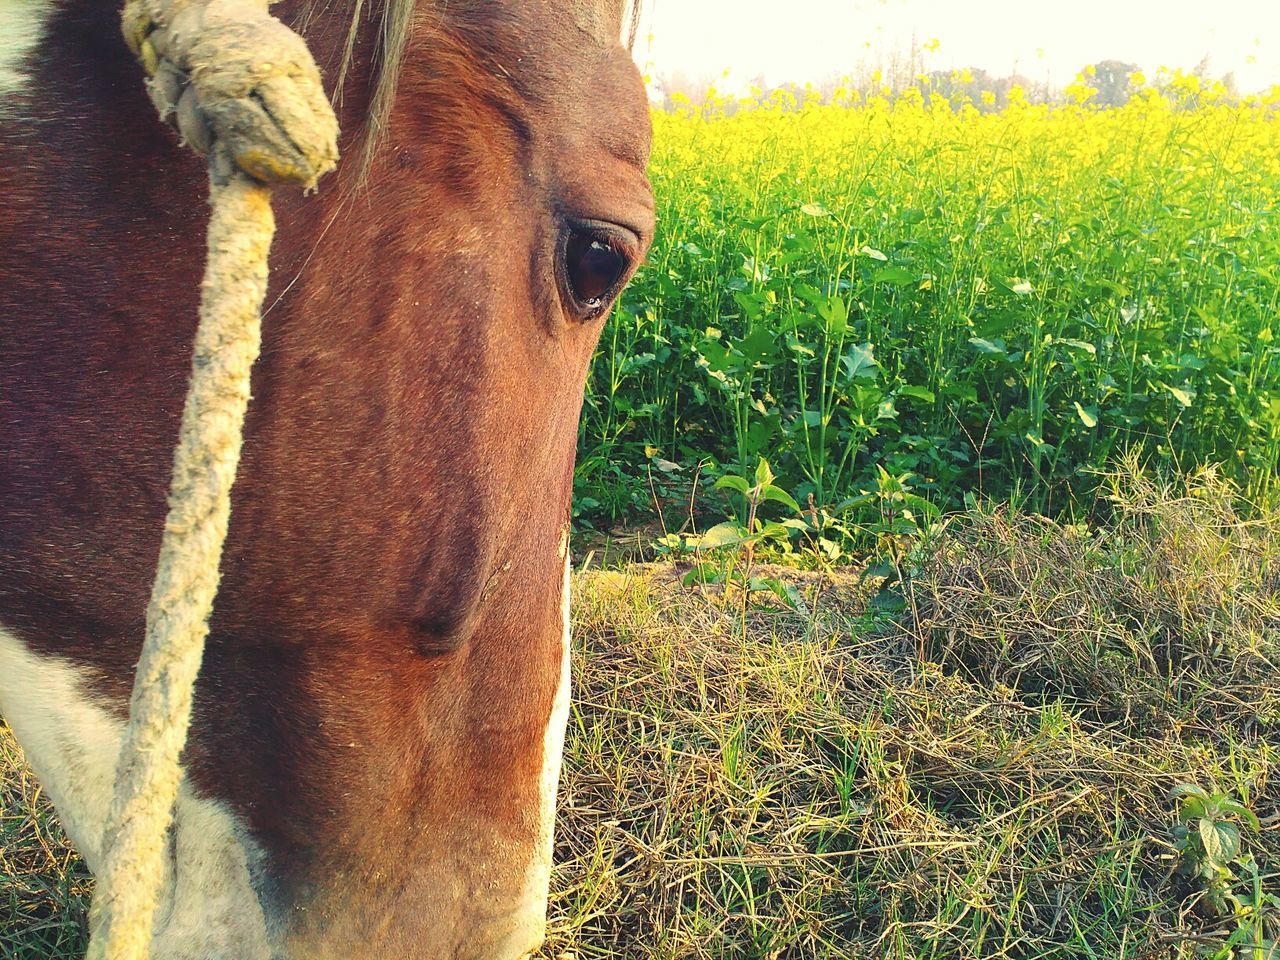 domestic animals, mammal, animal themes, one animal, field, livestock, no people, day, outdoors, grass, nature, close-up